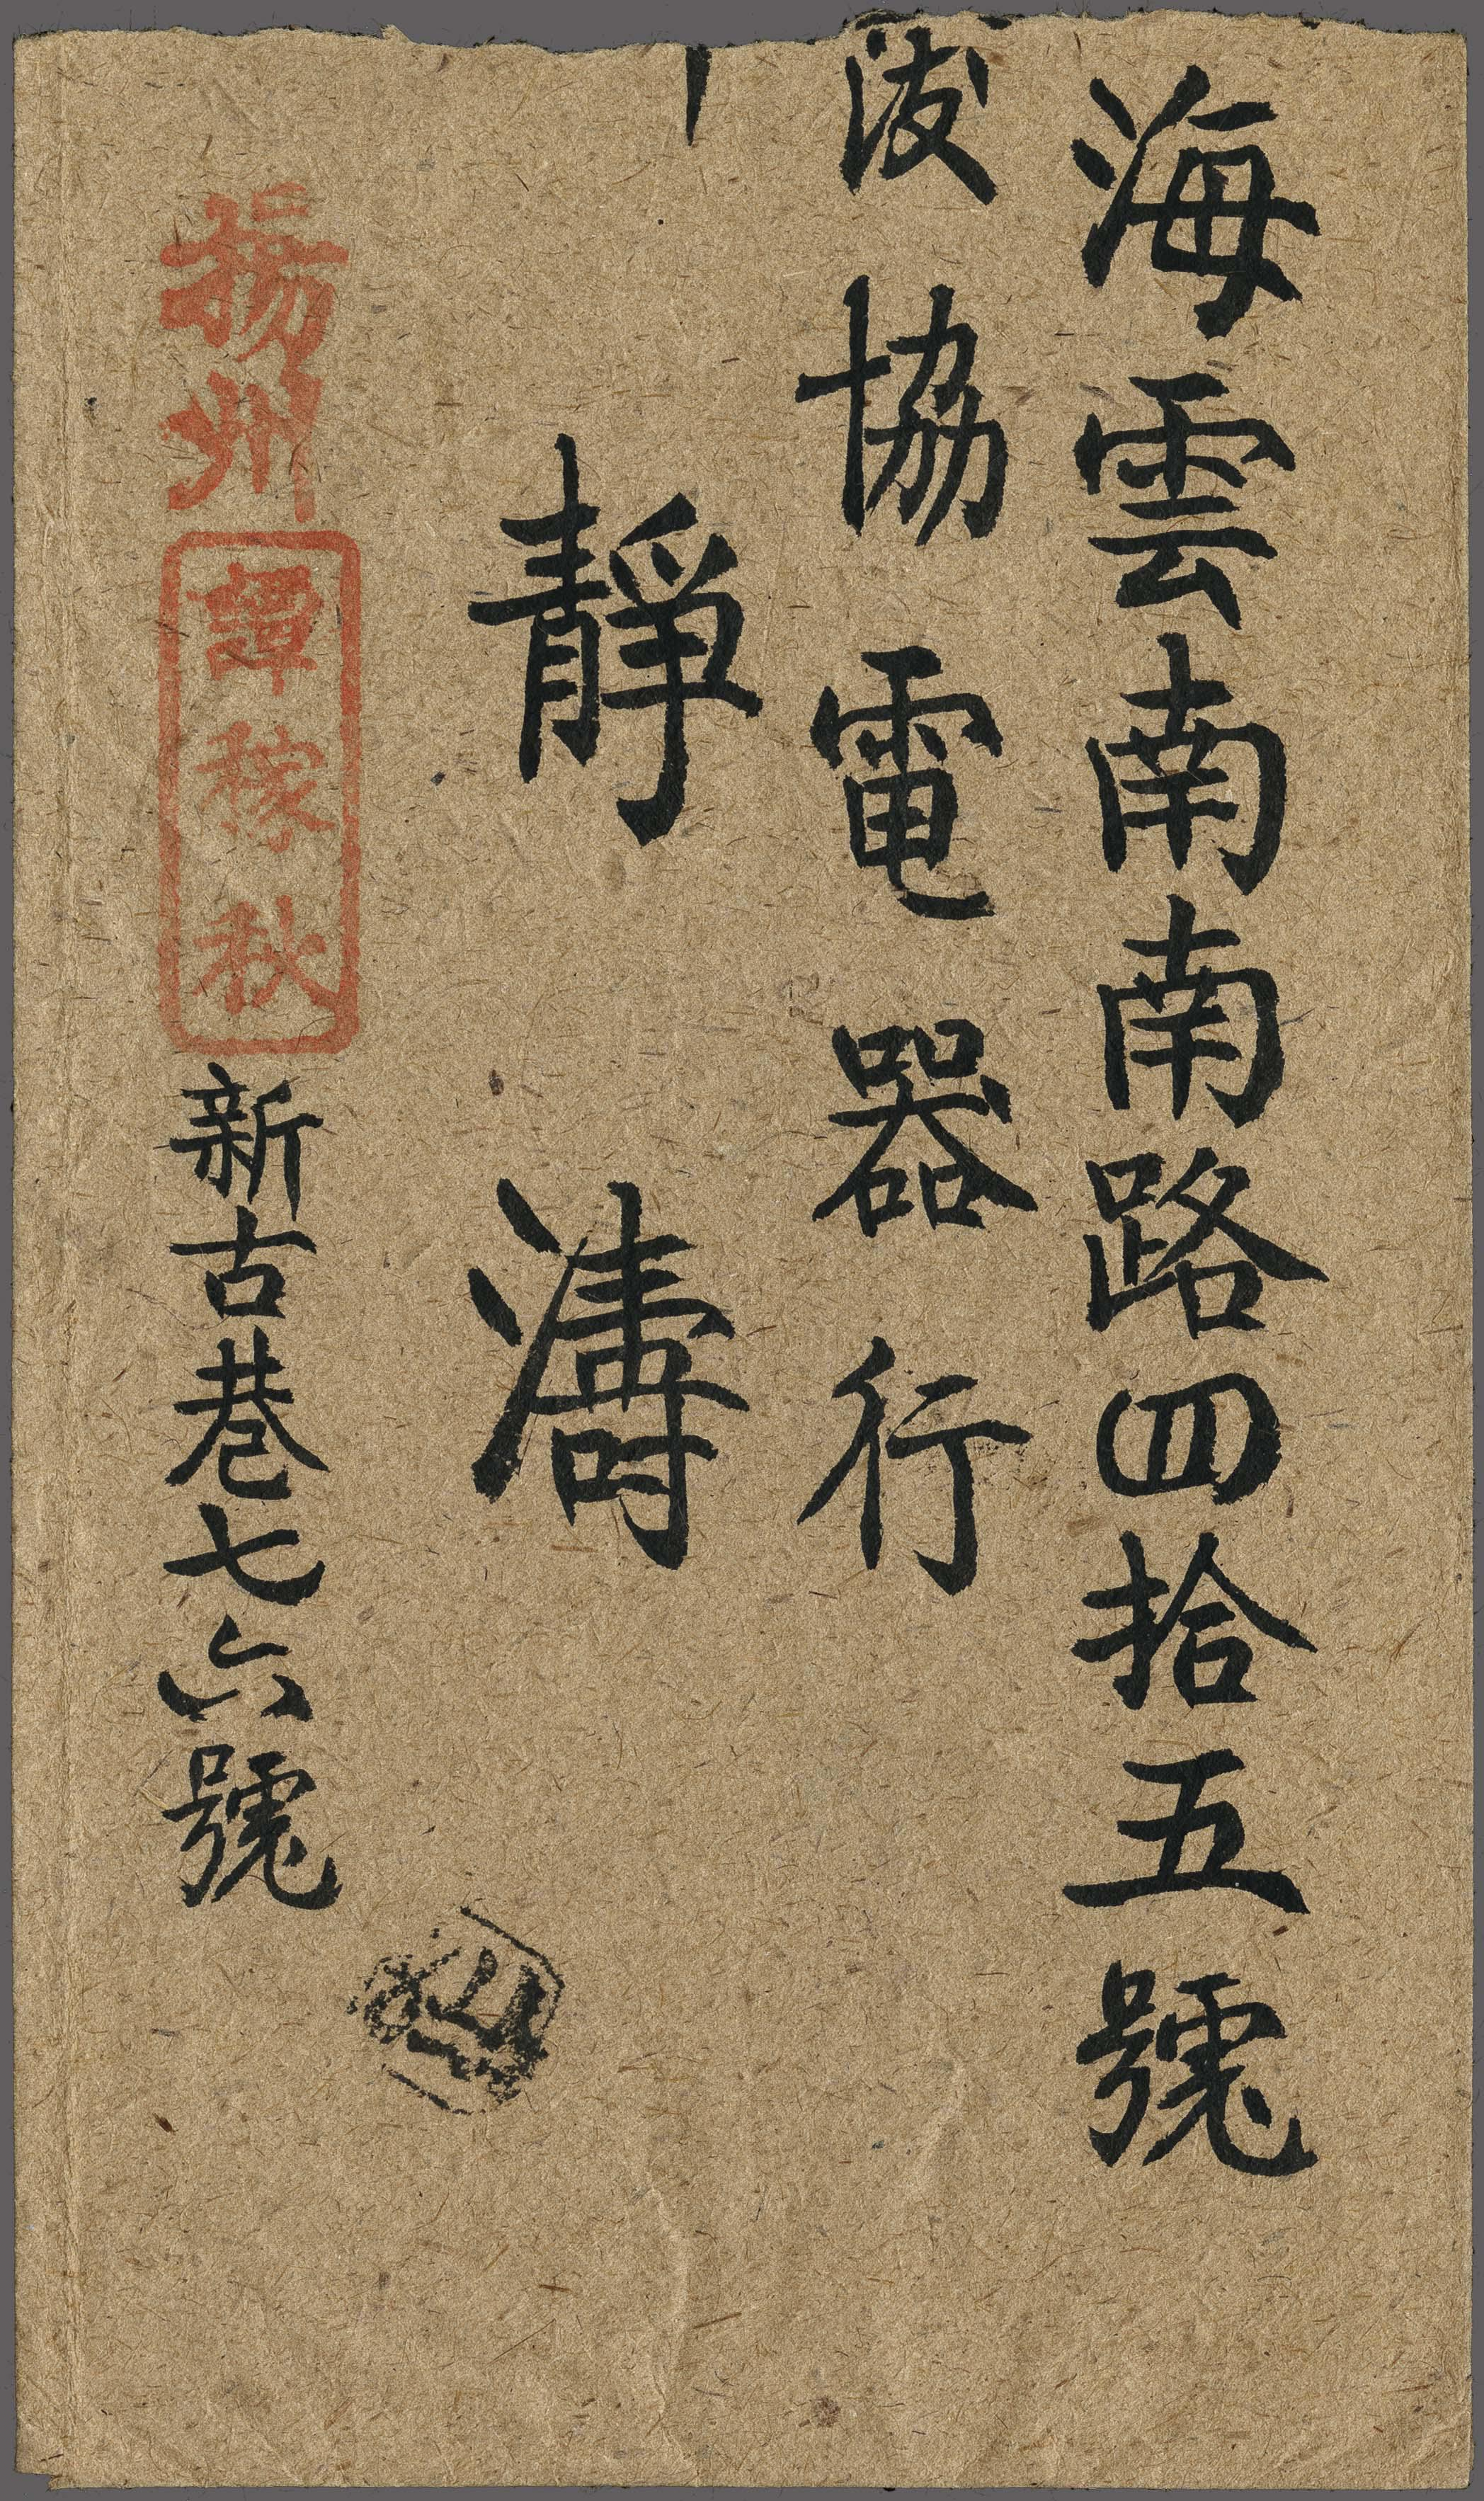 Lot 54 - China China Eastern Provinces -  Corinphila Veilingen Auction 250-253 - Day 1 - Foreign countries